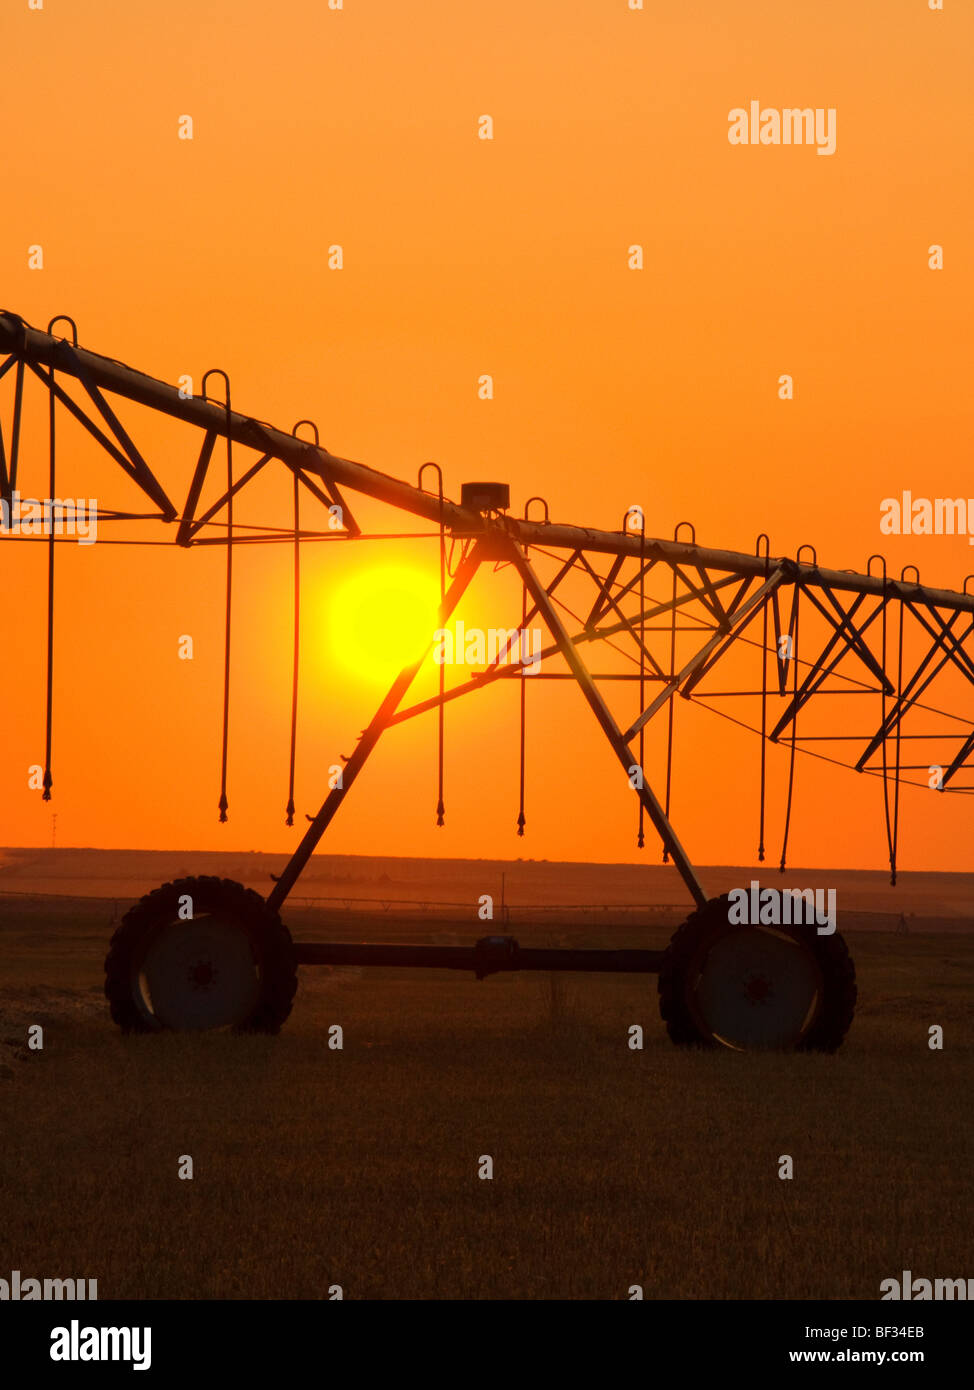 Agriculture - Center pivot irrigation system silhouetted at sunrise on a hay field / Alberta, Canada. - Stock Image